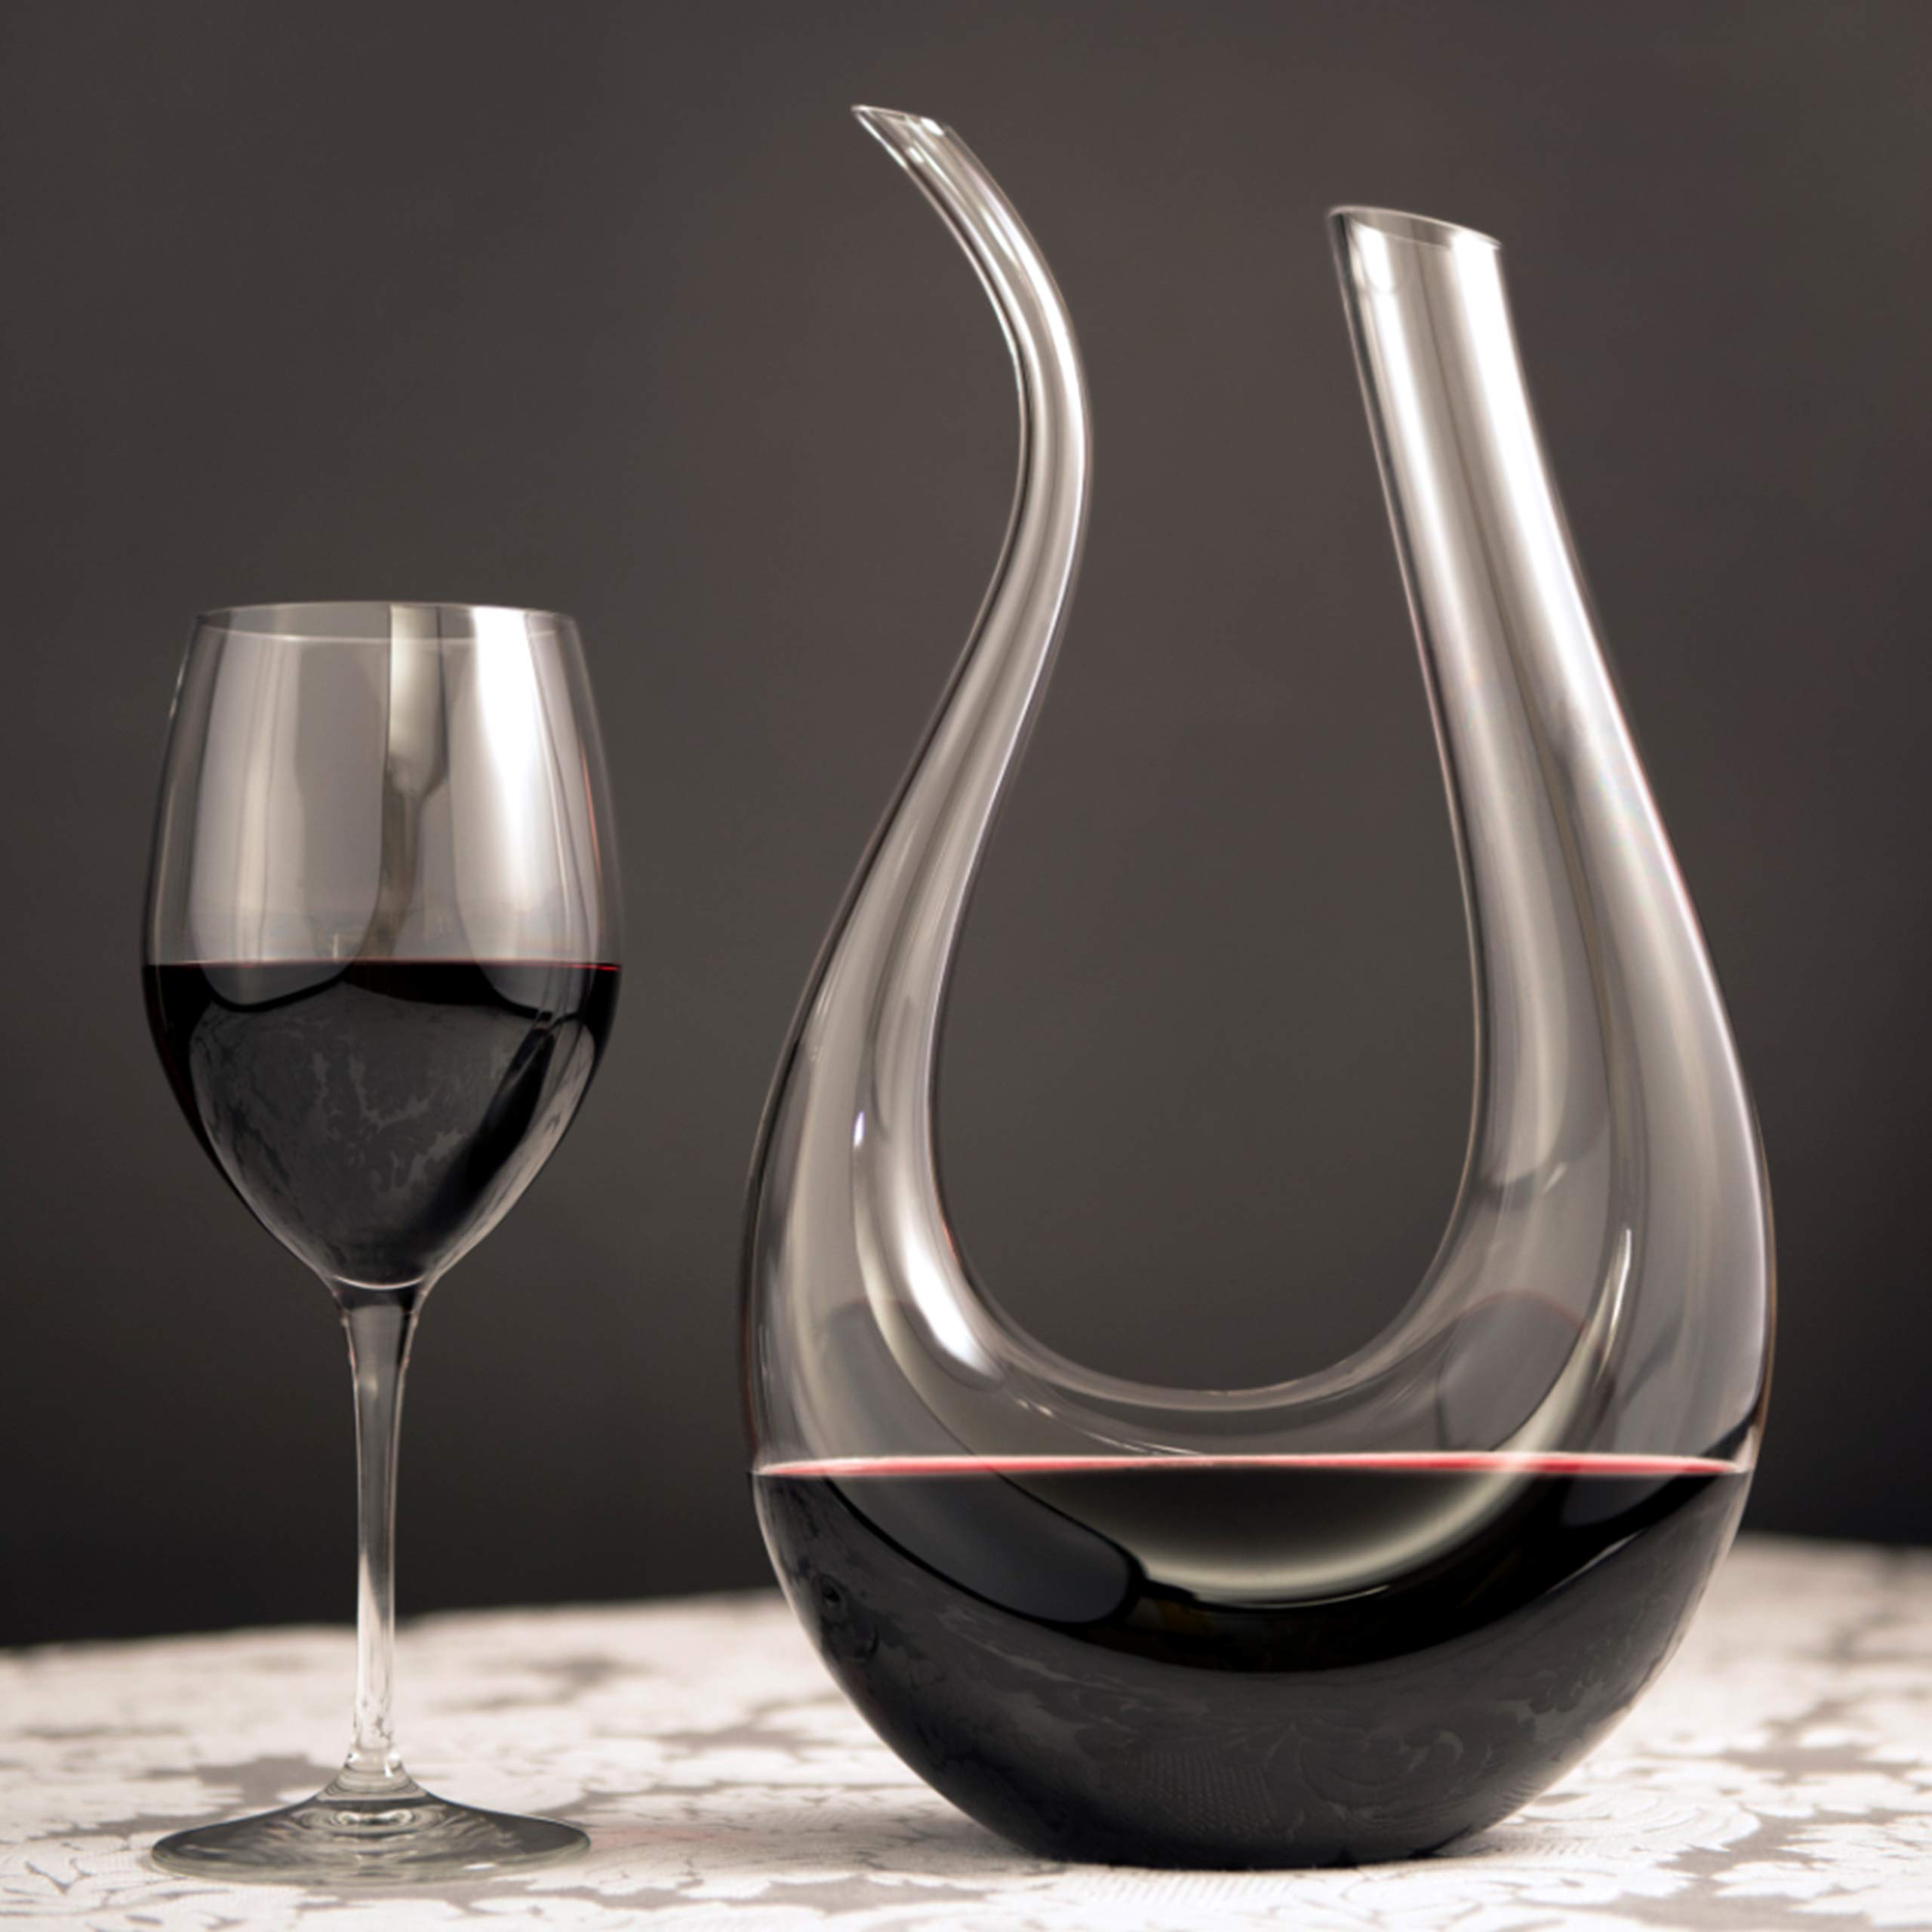 Wine Decanter by HiCoup - 100% Lead-Free Crystal Glass, Hand-Blown Red Wine Decanter/Carafe, Provides Intense Aerating in a Stunning U Shape Design by HiCoup Kitchenware (Image #2)